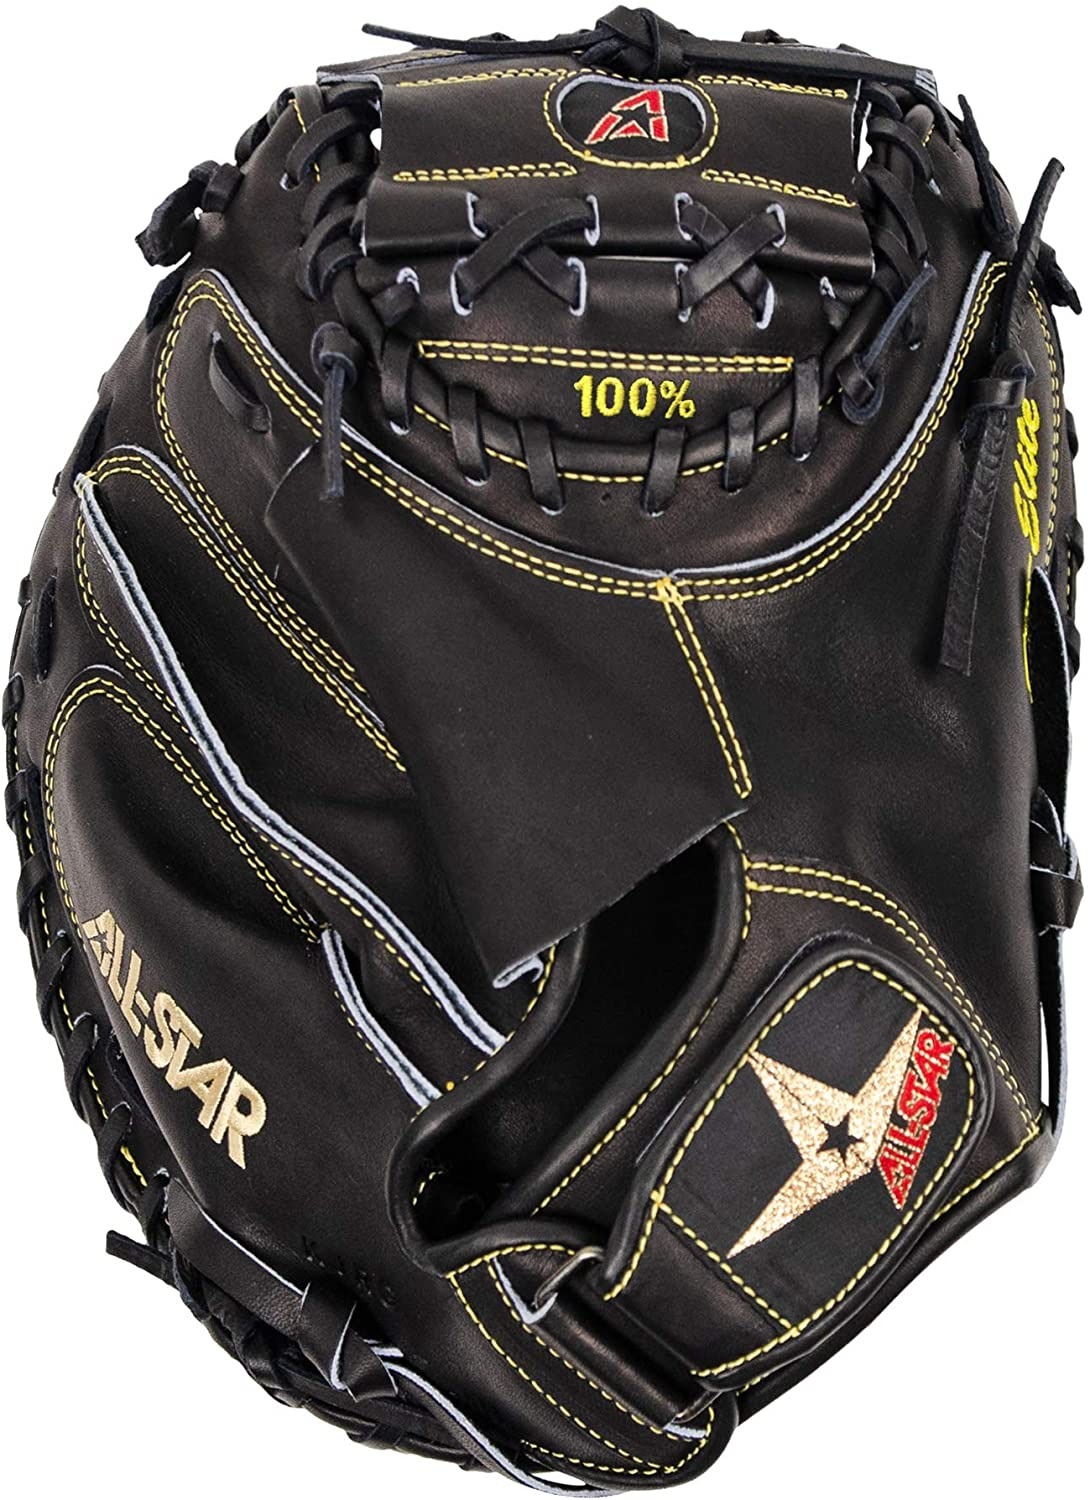 all-star-pro-elite-35-inch-cm3000bk-baseball-catchers-mitt-right-hand-throw CM3000BK-1-RightHandThrow   <div id=dpx-product-description_feature_div> <div id=descriptionAndDetails class=a-section a-spacing-extra-large> <div id=productDescription_feature_div class=celwidget data-feature-name=productDescription data-csa-c-id=3xhp90-2cbie7-atyoxp-g9ui1g